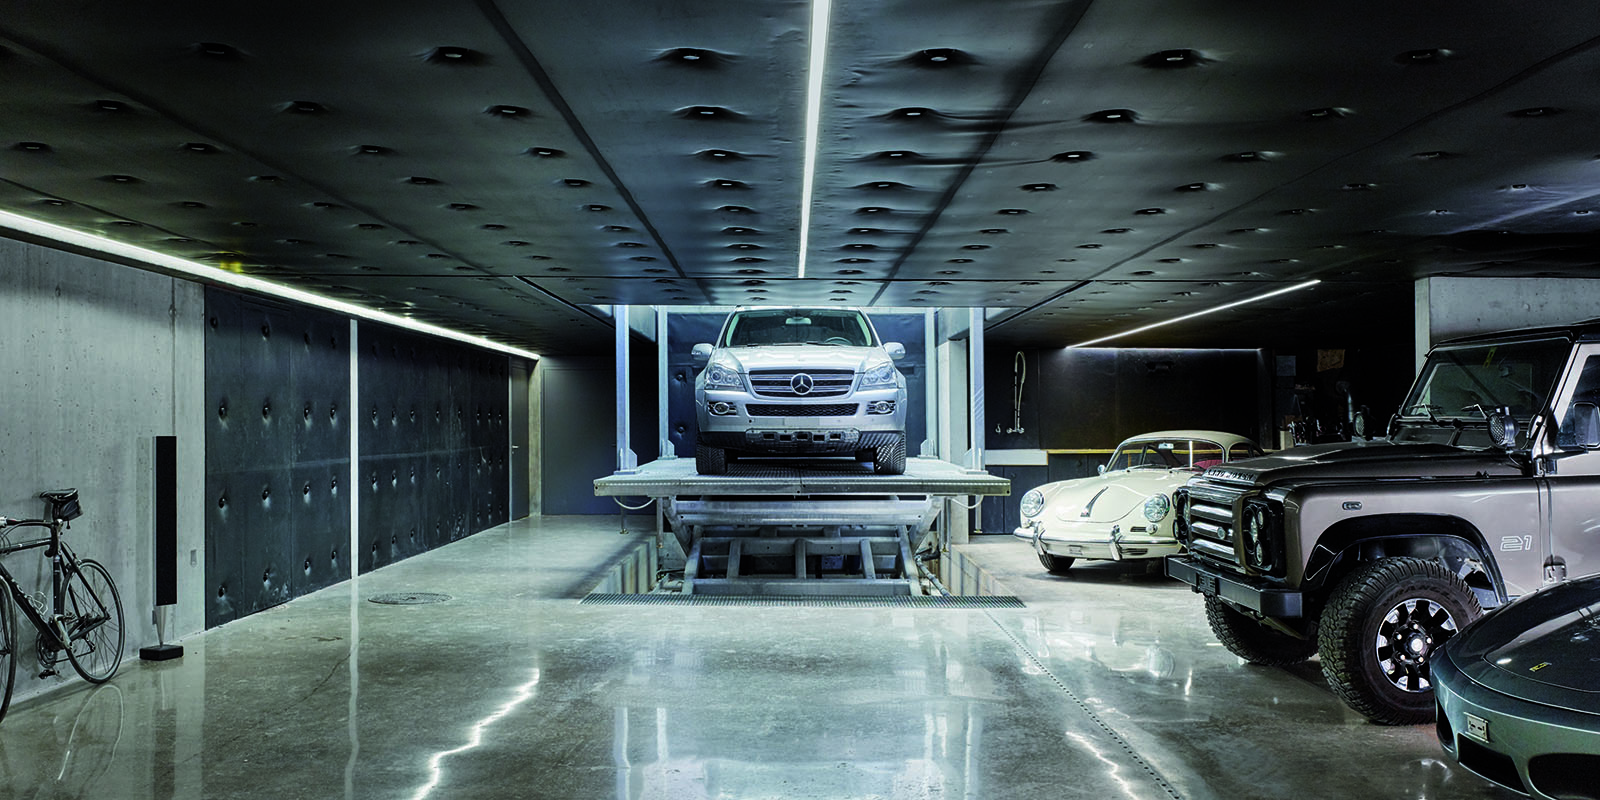 CARDOK, The secret car park, autolift, lift, auto's, mercedes, porche, volvo, automatisch